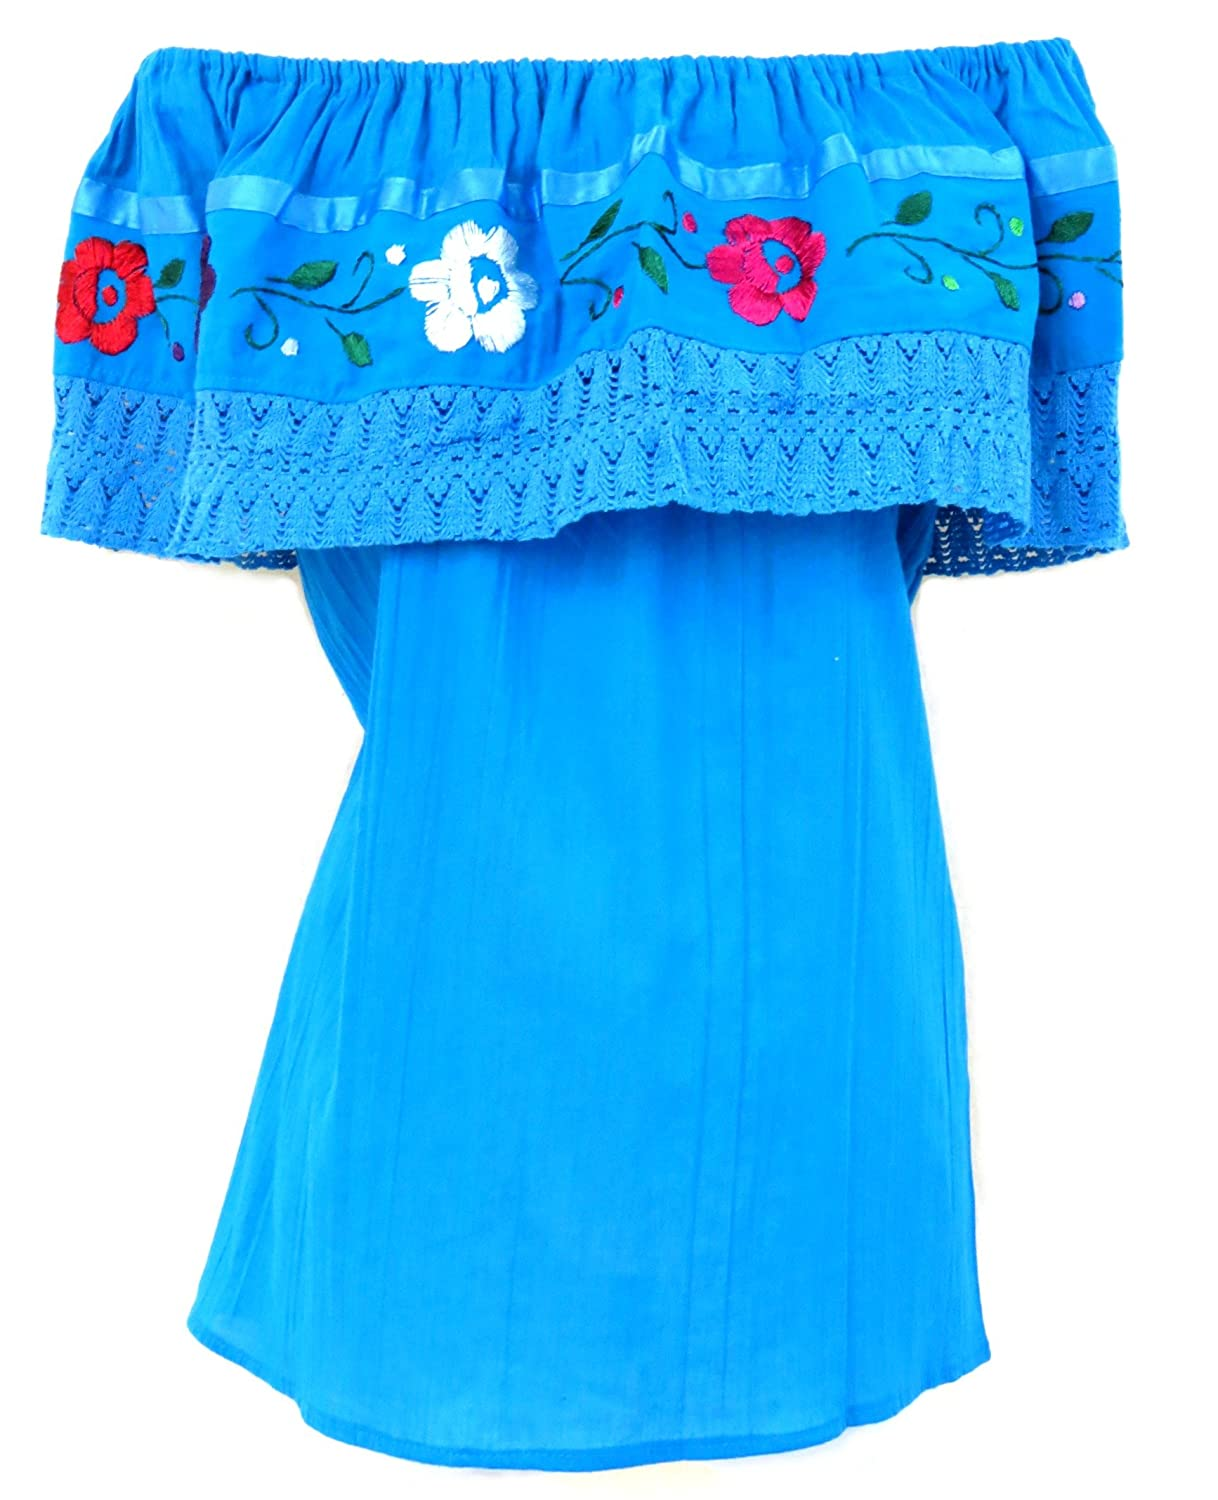 Women's Embroidered Crochet Cotton Off-Shoulder Turquoise Mexican Tops - DeluxeAdultCostumes.com